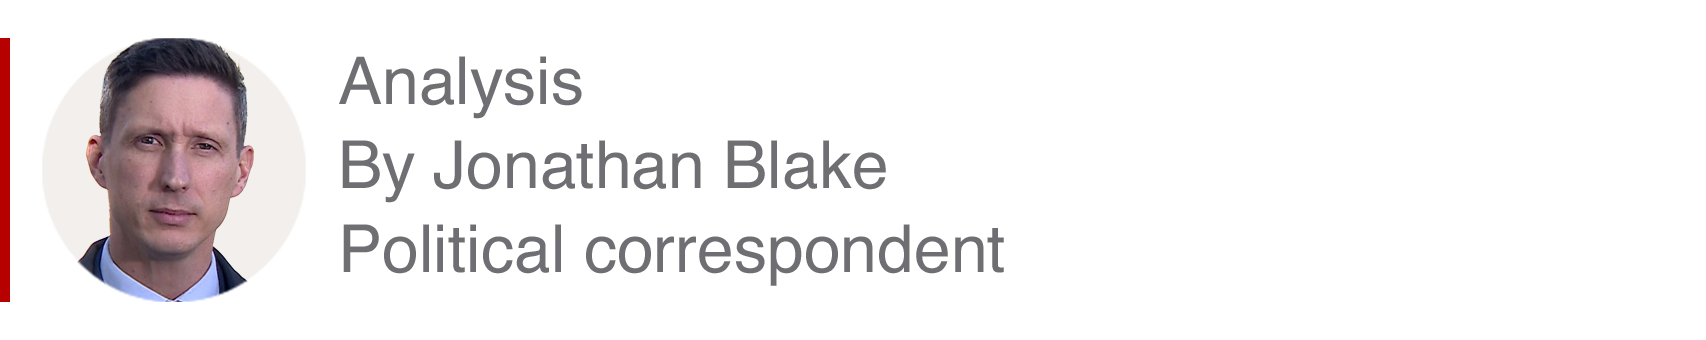 Analysis box by Jonathan Blake, political correspondent